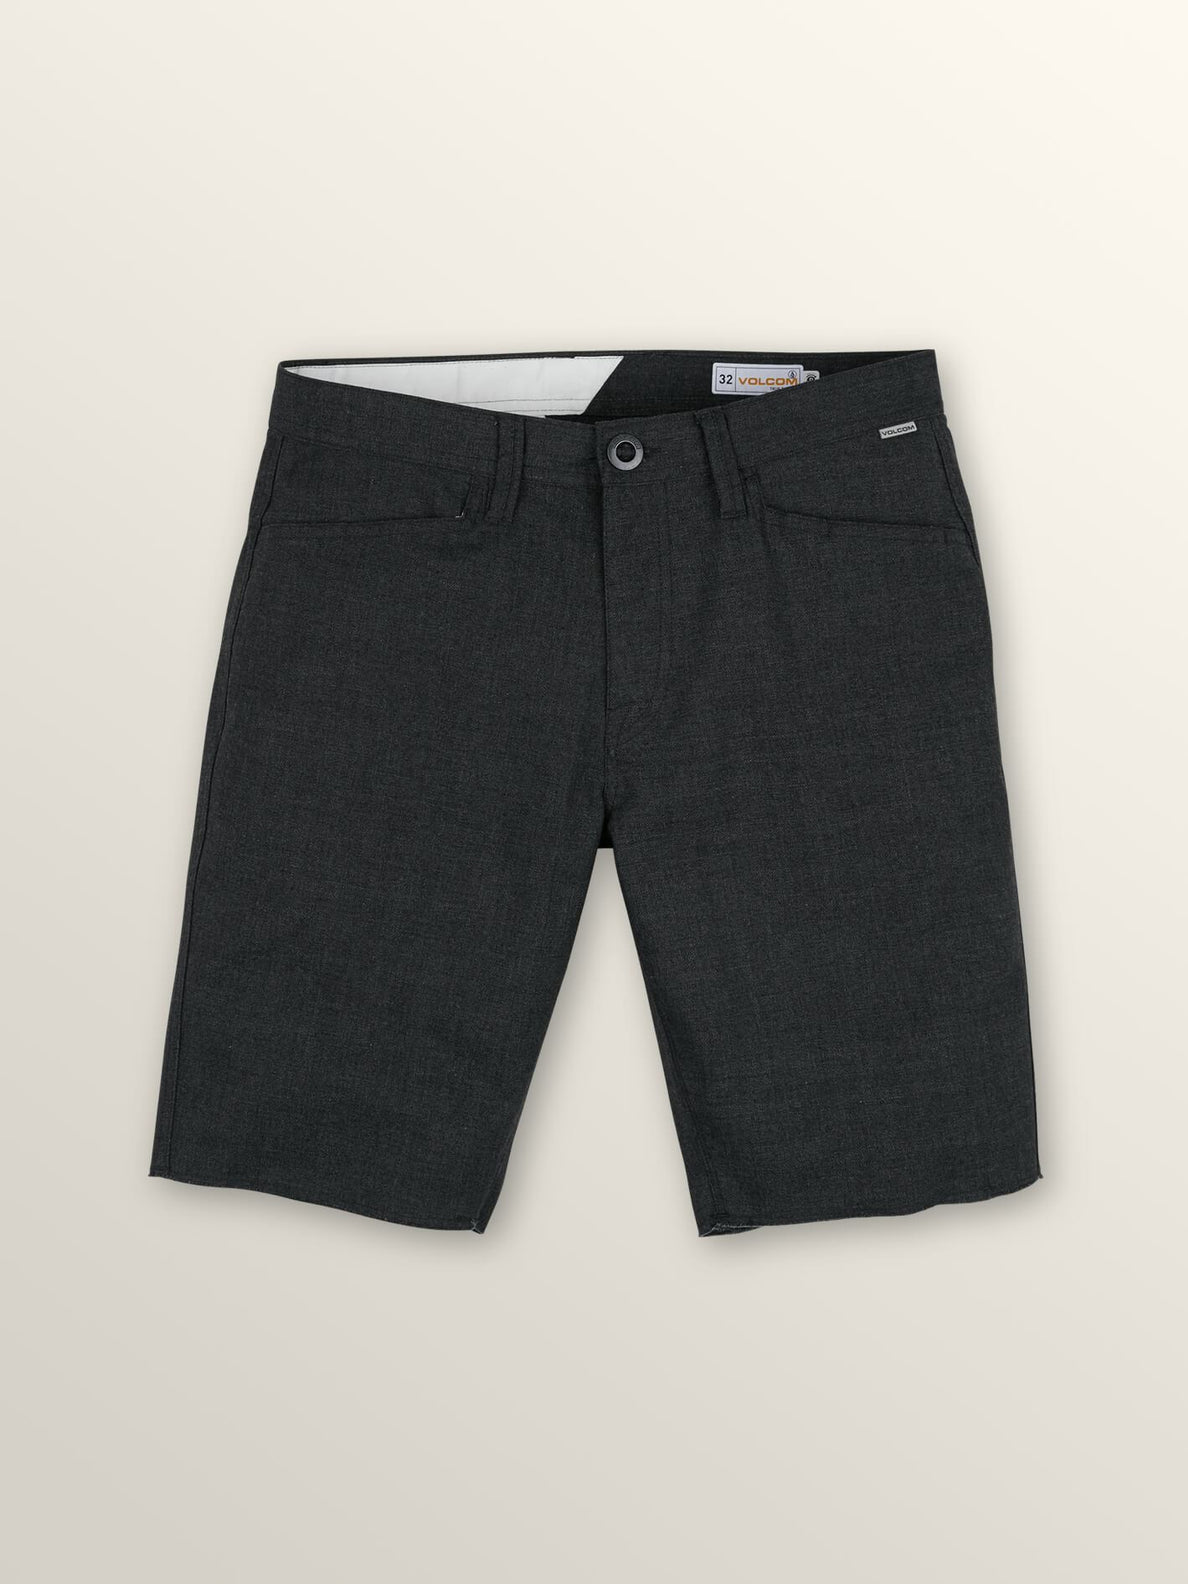 Gritter Thrifter Shorts In Gunmetal Grey, Second Alternate View